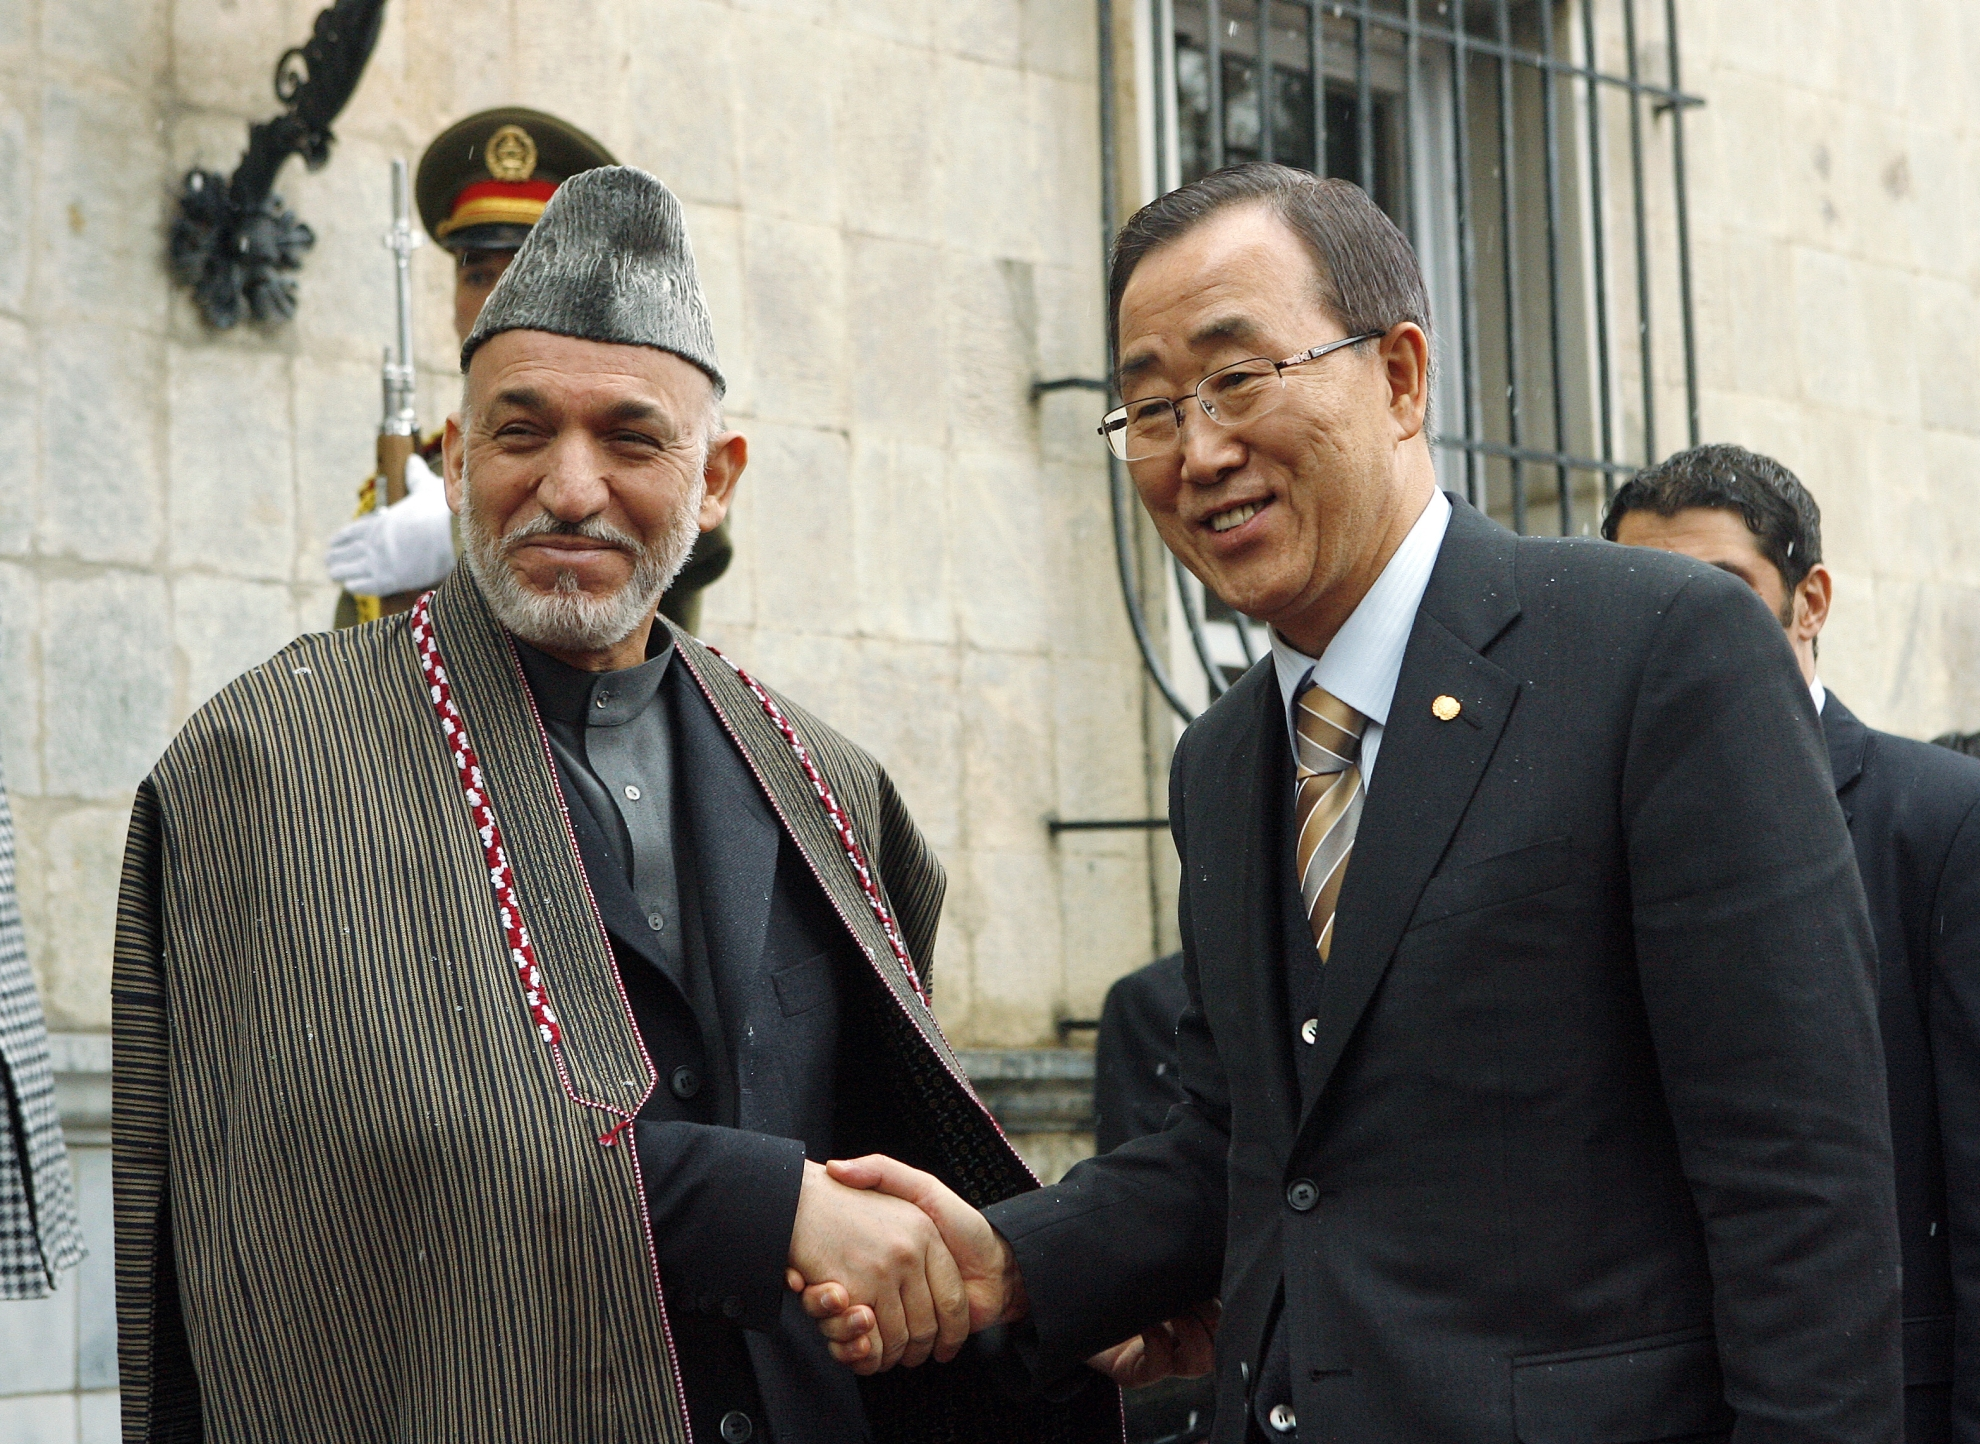 Former president Hamid Karzai has sought to demonstrate ethnic inclusion through his choice of dress: His coat is a 'chapan', traditionally worn by Uzbeks and Turkmens; the hat is called 'karakul' and is widespread among Tajik citydwellers, while the loose trousers and the tunic are typically Pashtun. The Western-style coat at the same time signifies modernity and an extended hand to the West. Here he is seen with UN Secretary-General Ban Ki Moon in 2009. Photo: UN Photo/Evan Schneider